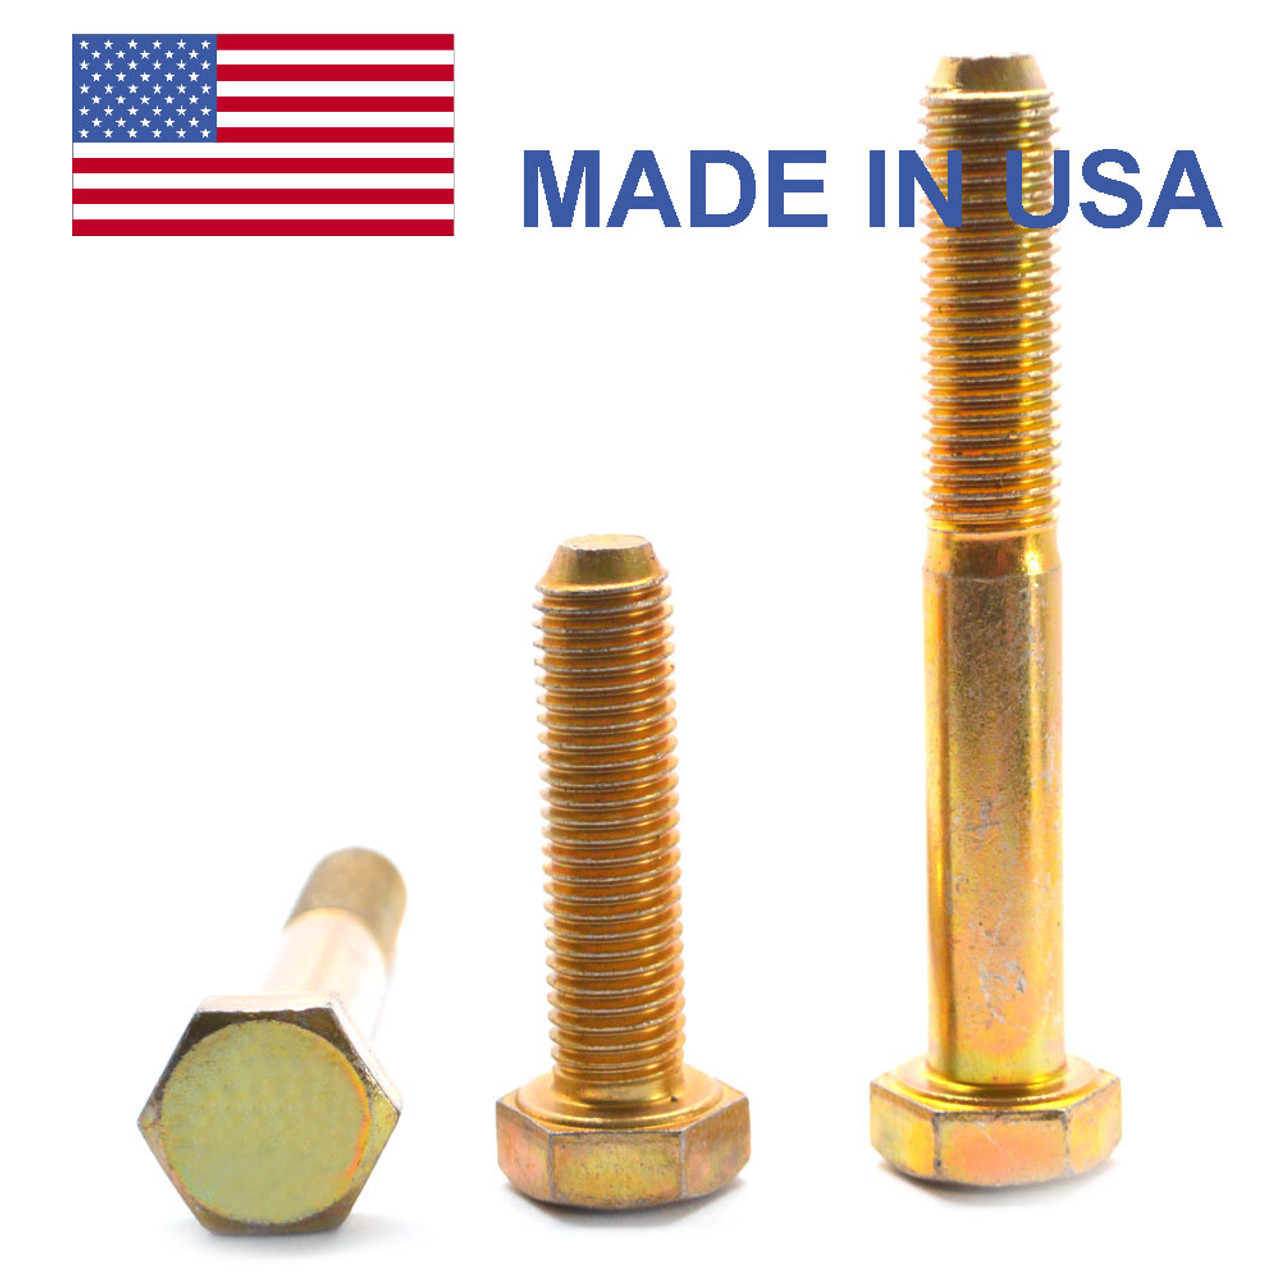 1/2-13 x 1 1/8 Coarse Thread Grade BD MS90728 Hex Cap Screw (Bolt) - USA Alloy Steel Yellow Zinc Plated